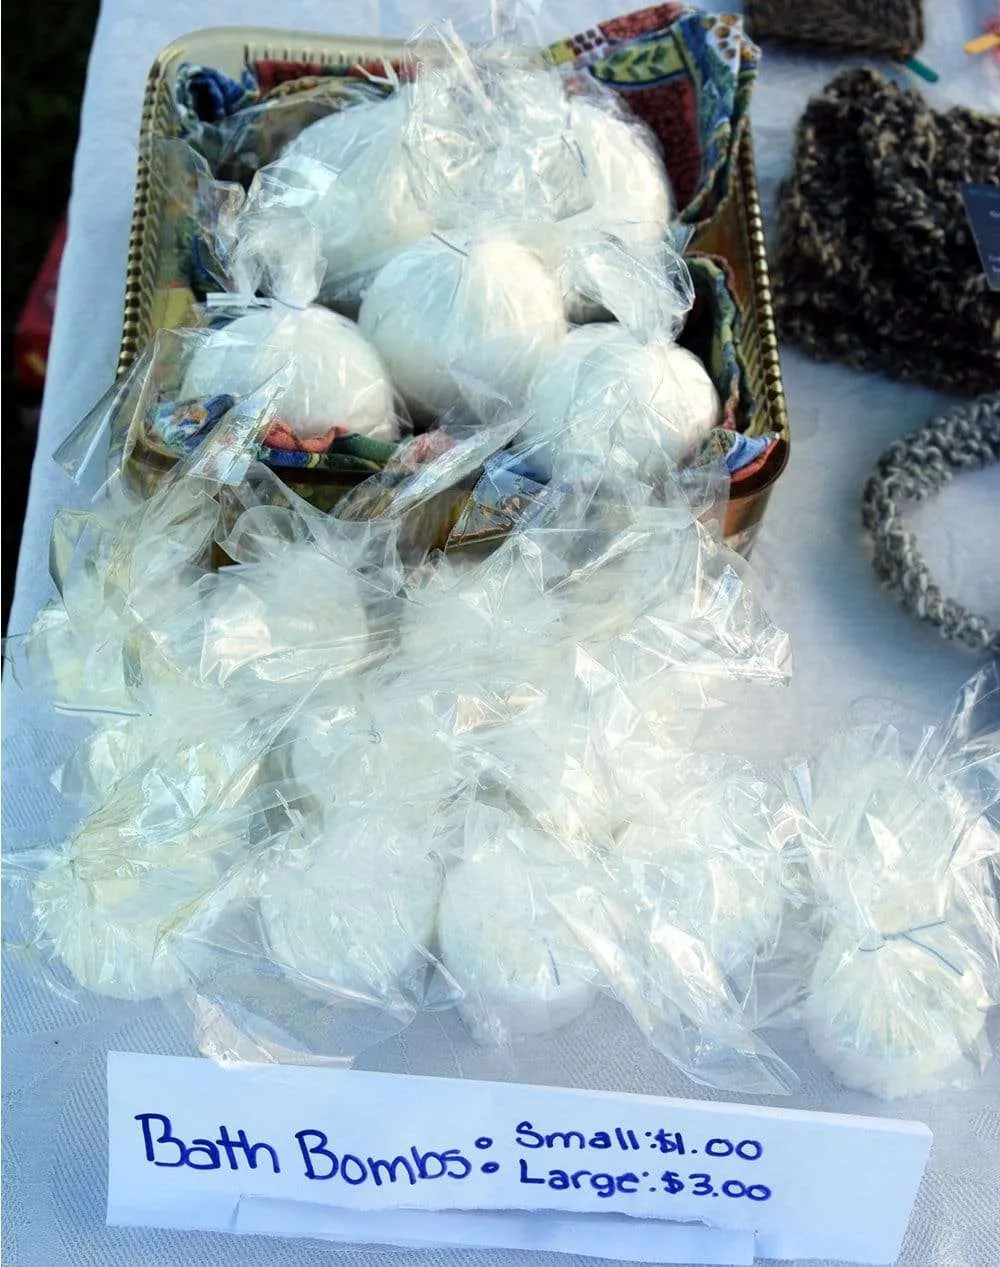 Style & Sweets bath fizzies by Olivia Milholland - Craftsbury Farmers Market